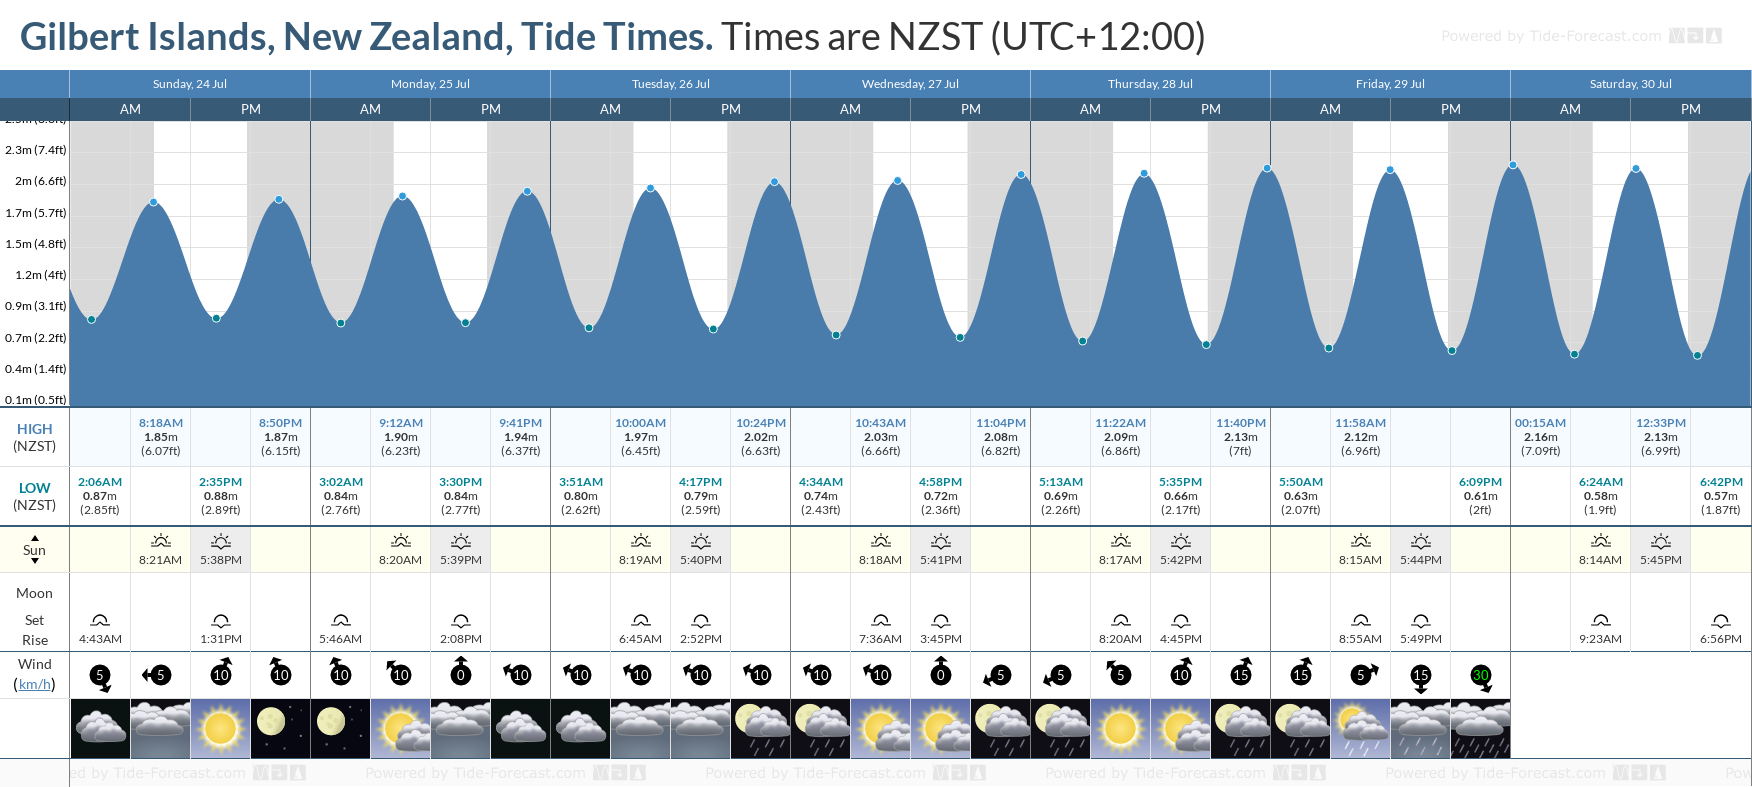 Gilbert Islands, New Zealand Tide Chart including high and low tide tide times for the next 7 days